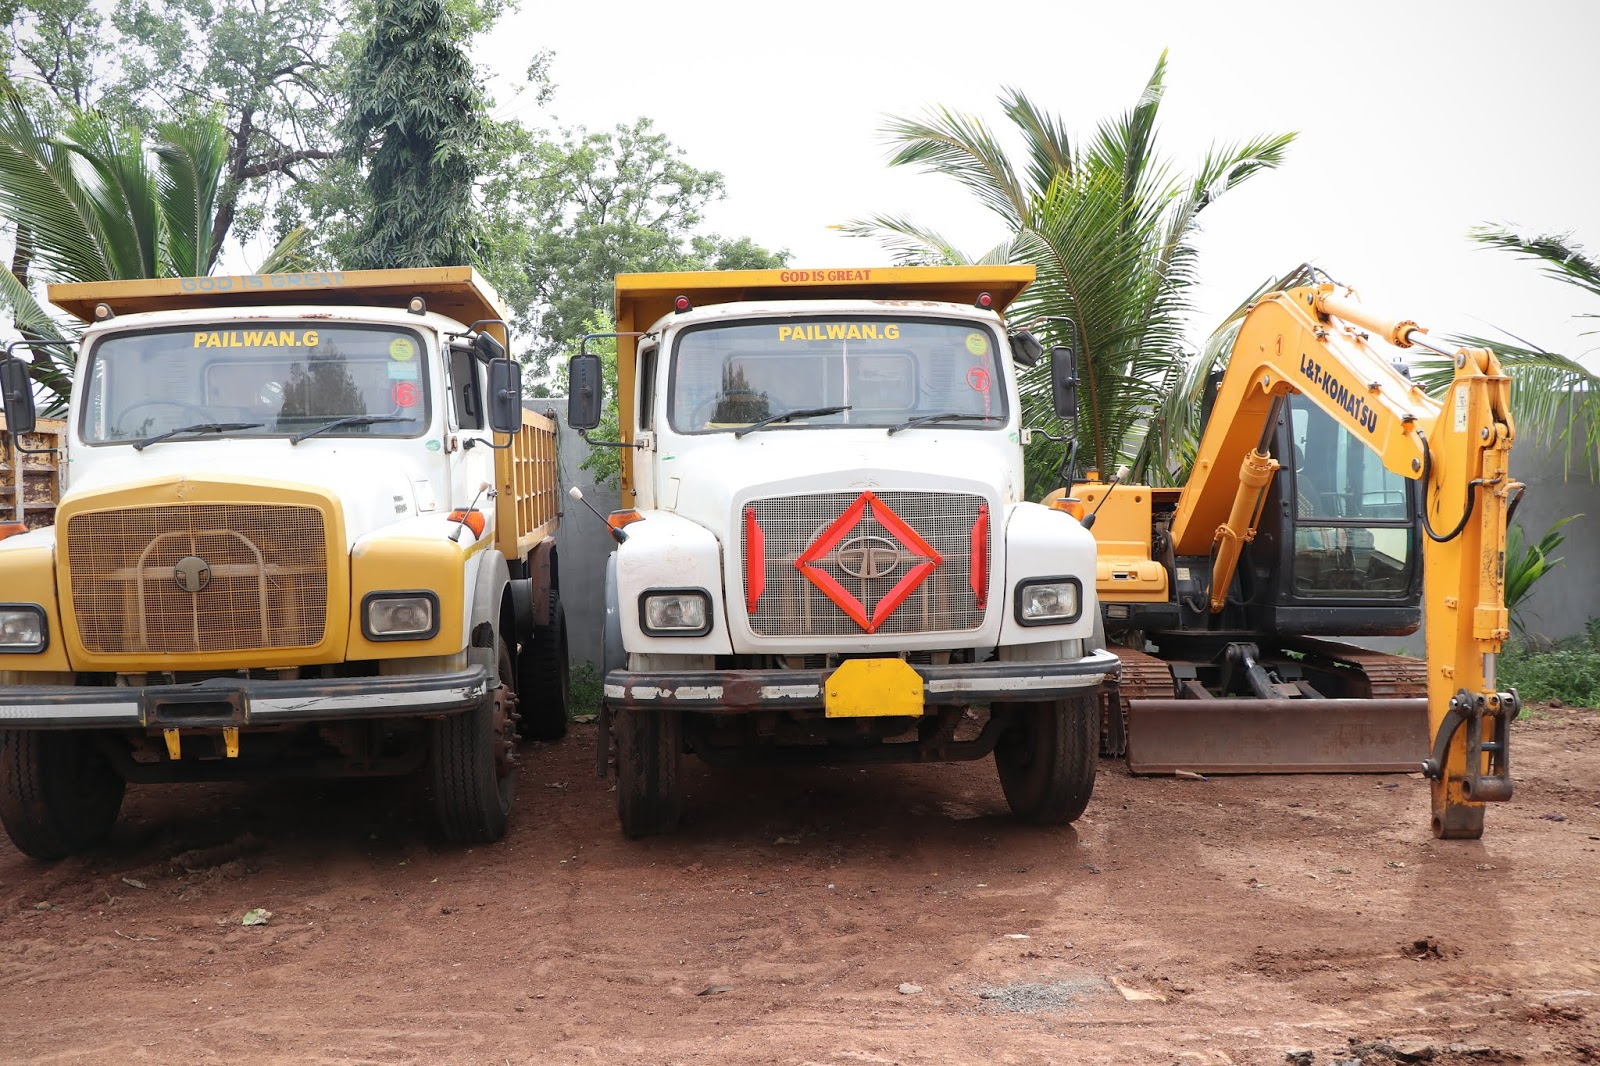 Our Vehicles - Pailwan Buildcon Private Limited - Best Contractor and Construction Company in Jamakhandi Karnataka,Best Road Construction Company in Jamakhandi Bagalkot Karnataka,Best Road Contractor in Jamakhandi Bagalkot Karnataka,Best Building Contractors in Jamakhandi Bagalkot Karnataka,Best Civil Contractors in Jamakhandi Bagalkot Karnataka,Best Contractors in Jamakhandi Bagalkot Karnataka,Best Excavating Service Company in Jamakhandi bagalkot Karnataka,Best General Contracting Company in Jamakhandi bagalkot Karnataka,Best Mine Development Company in Jamakhandi Bagalkot Karnataka,Best Water Lines Construction Company in Jamakhandi Bagalkot Karnataka,Best Sewer Lines Construction Company in Jamakhandi Bagalkot Karnataka,Best Logging Service Company in Jamakhandi Bagalkot Karnataka,Best Logging Service Company in Jamakhandi Bagalkot Karnataka,Best Drilling and Blasting Service Company in Jamakhandi Bagalkot Karnataka,Best Clearing and Hauling Service Company in Jamakhandi Bagalkot Karnataka,Best Envirocleanup  Service Company in Jamakhandi Bagalkot Karnataka, contractors in Karnataka, road contractors in Karnataka, civil contractors in Karnataka, civil contractors in bagalkot, civil contractors in jamakhandi, civil contractors in athani, civil contractors in near me, road construction contractors in Karnataka, road construction contractors in jamakhandi, road construction contractors in bahalkot, road construction contractors in bijapur, road construction contractors in athani, top contractors in Karnataka, top contractors in jamakhandi, top contractors in bagalkot, top contractors in athani, top civil contractors in jamakhandi, top civil contractors in belagavi, top civil contractors in athani,  water supply contractors in Karnataka, water supply contractors in jamakhandi,  water supply contractors in bagalkot, waterproofing contractors in jamakhandi, waterproofing contractors in Karnataka, waterproofing contractors, road building materials, road building equipments, road building equipments for rent, road building equipments in jamakhandi, road building bagalkot, road building excavator, general contractors, mine development, excavating in jamakhandi,